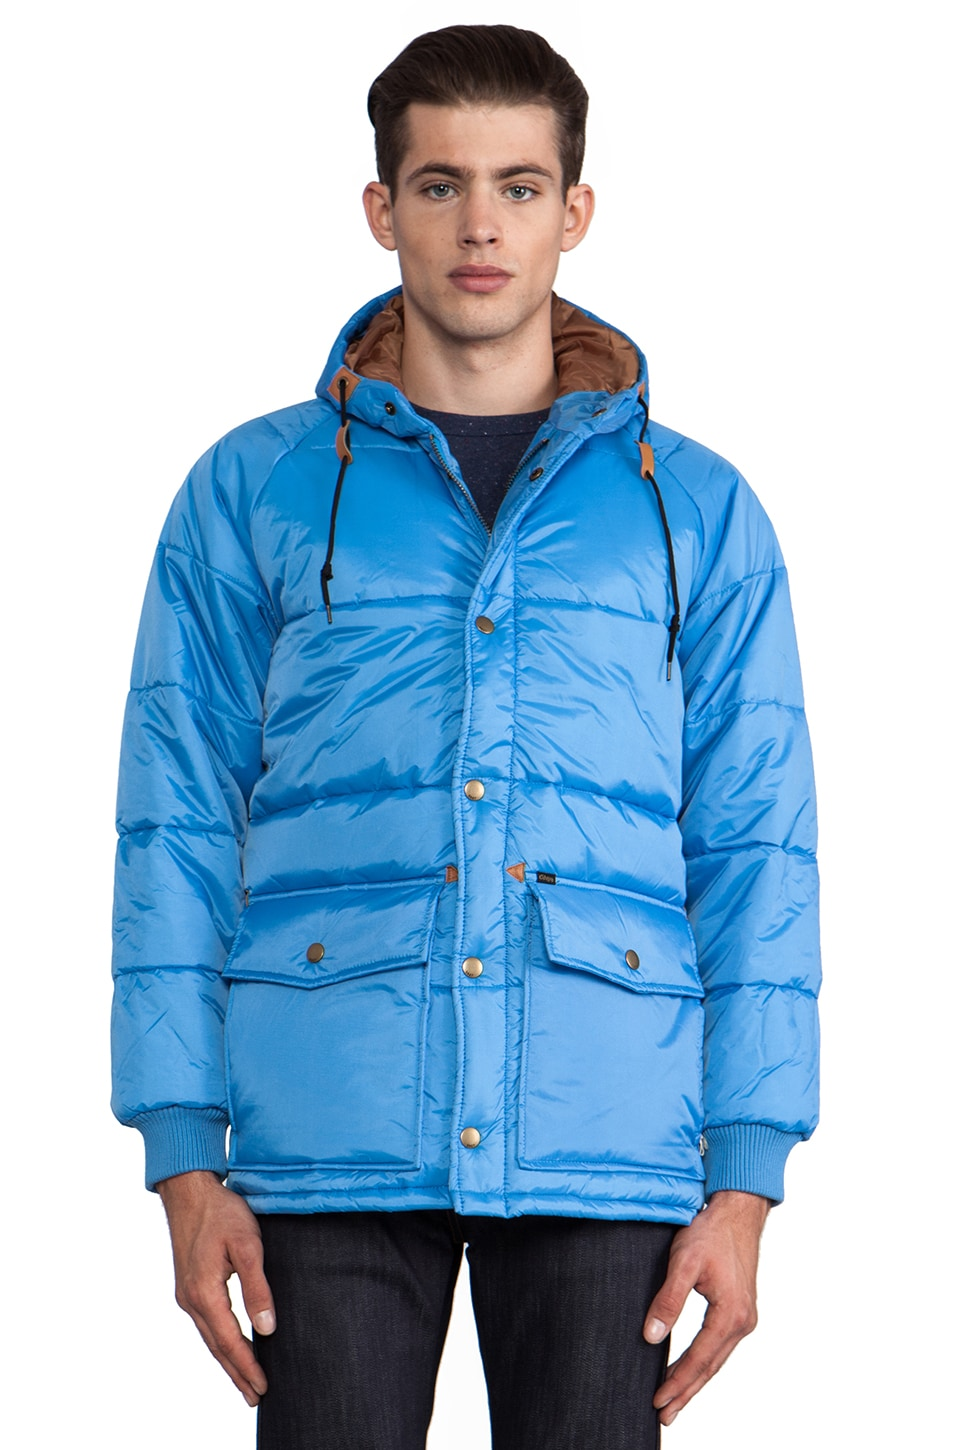 Obey Blizzard Puffer Jacket in Sky Blue